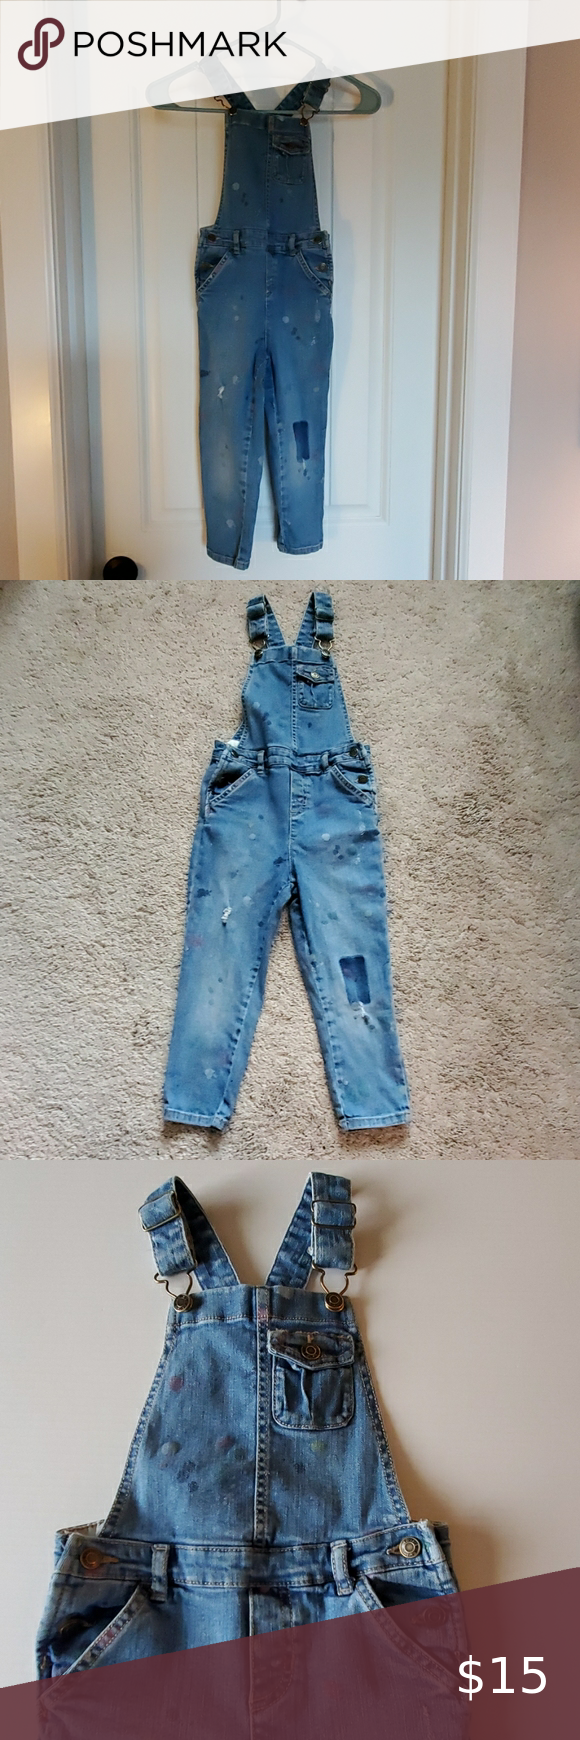 Carters Paint Splattered Distressed Overalls 5T Carters Paint Splattered Distressed Overalls  Size 5T Lightly distressed with scattered spots of paint fron and back Very gently used, no flaws  R16 1.26/065 15 Carter's Bottoms Overalls